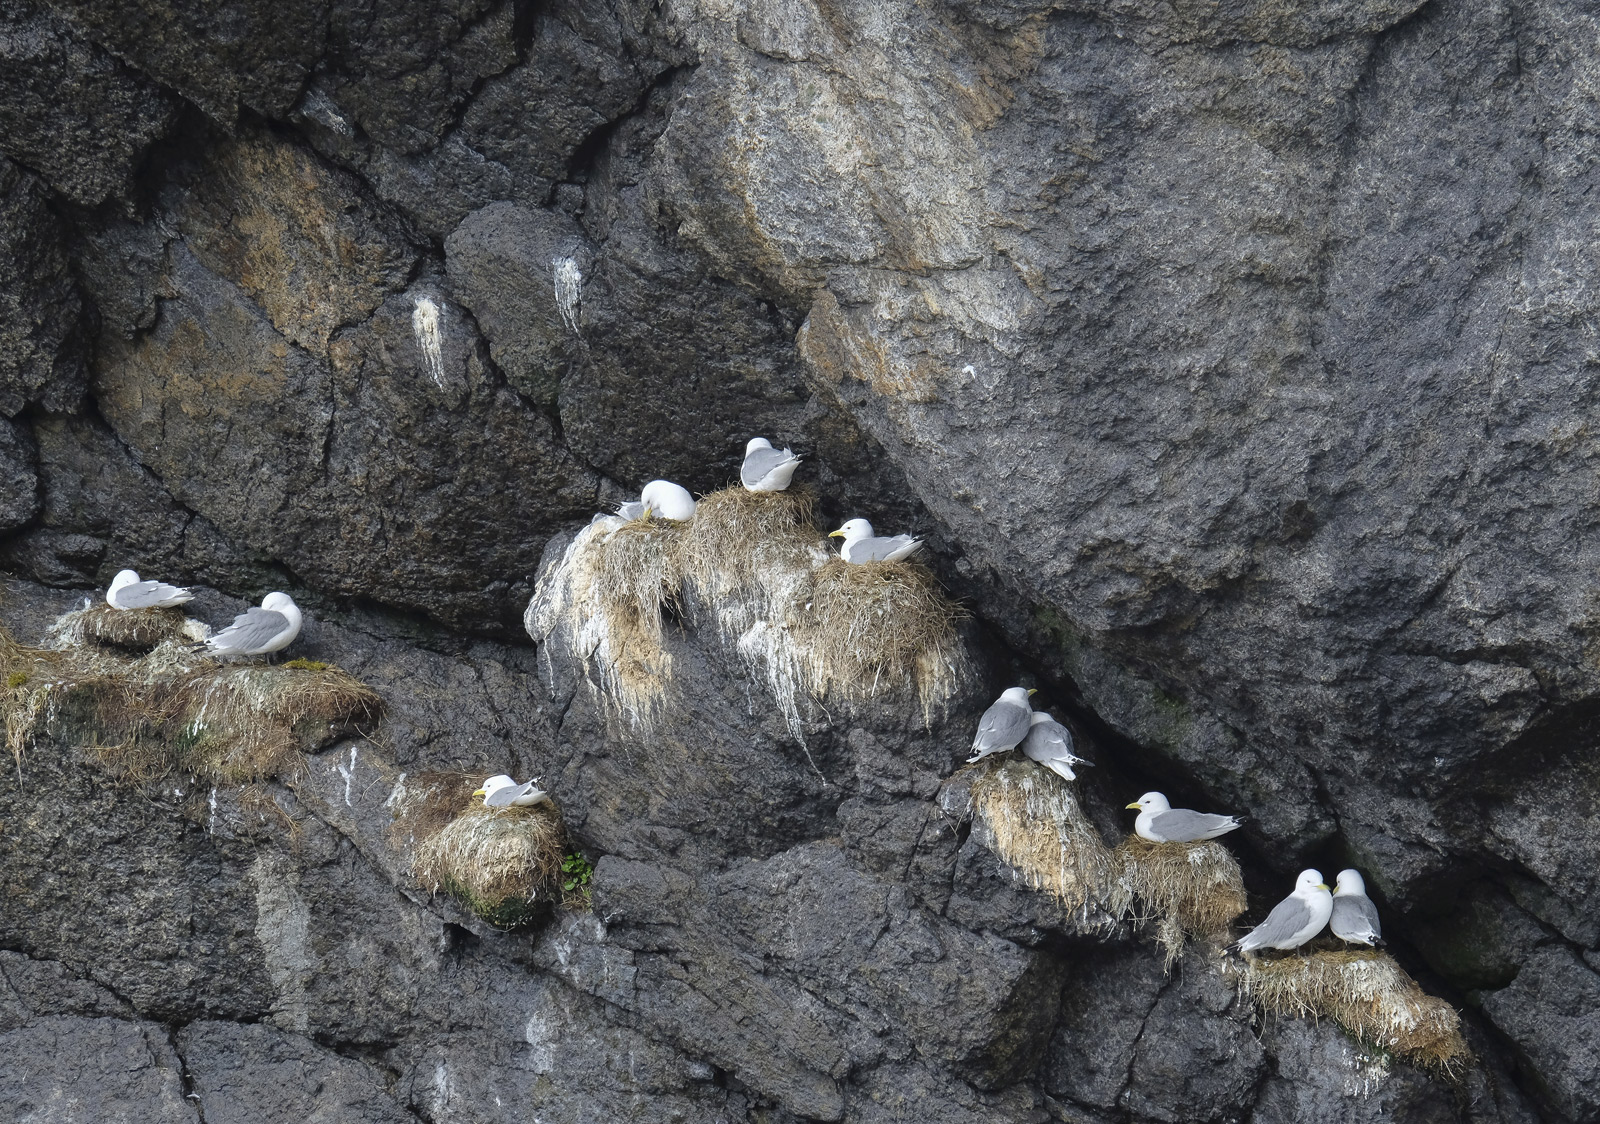 There are a huge number of small bird colonies nesting in the cliffs of Lofoten and some of them are very close to human habitation...